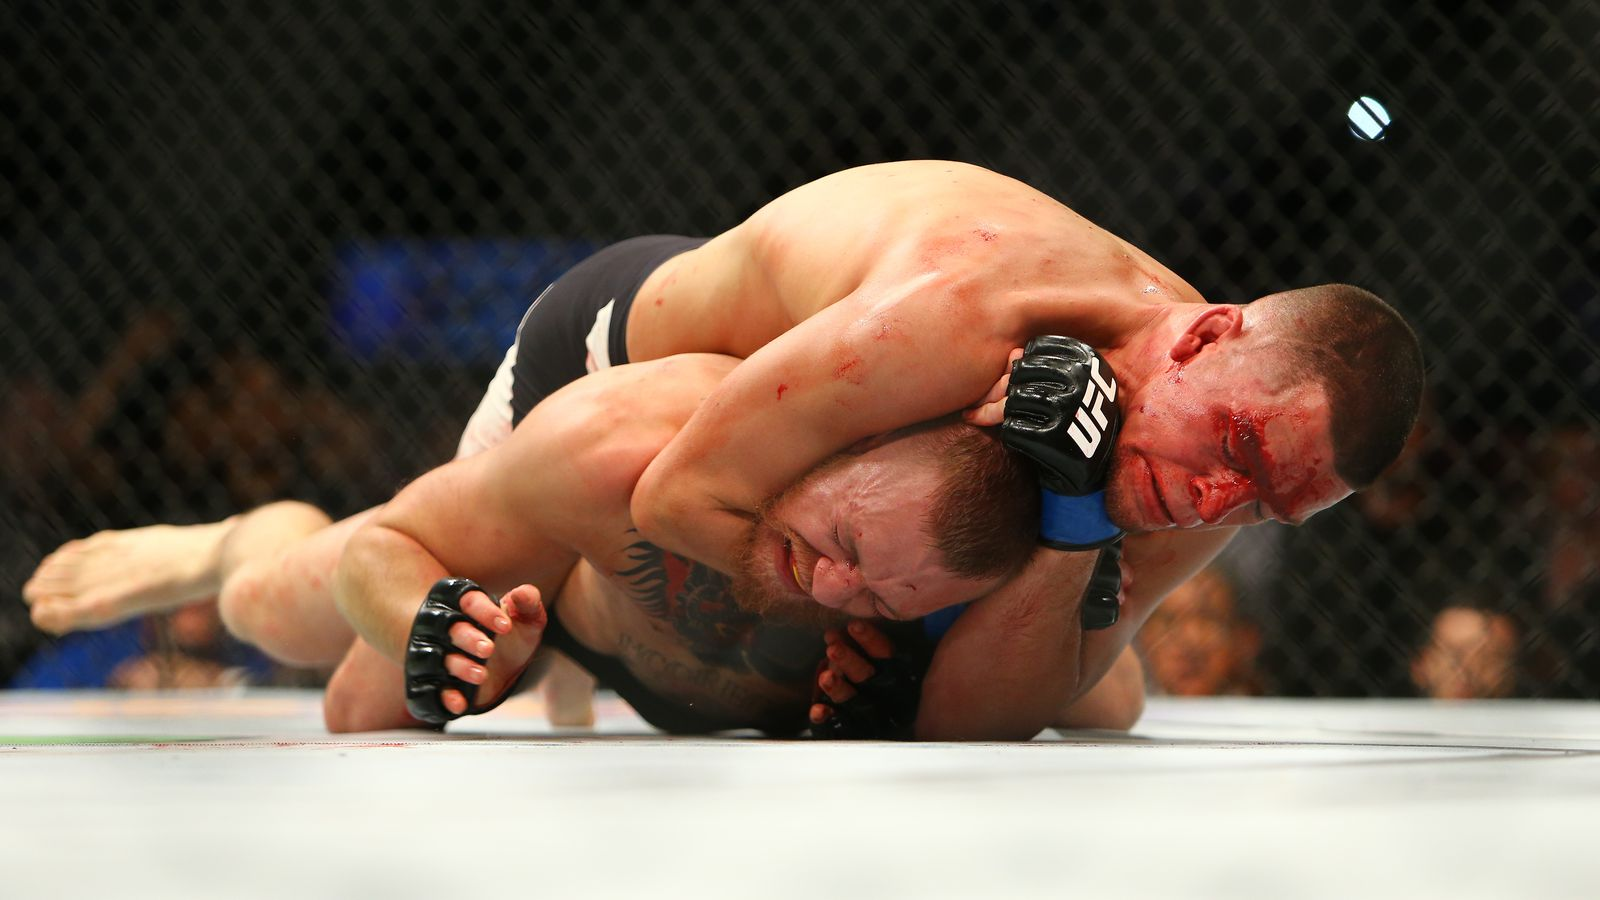 Renzo Gracie: 'It's a compliment if you don't tap'